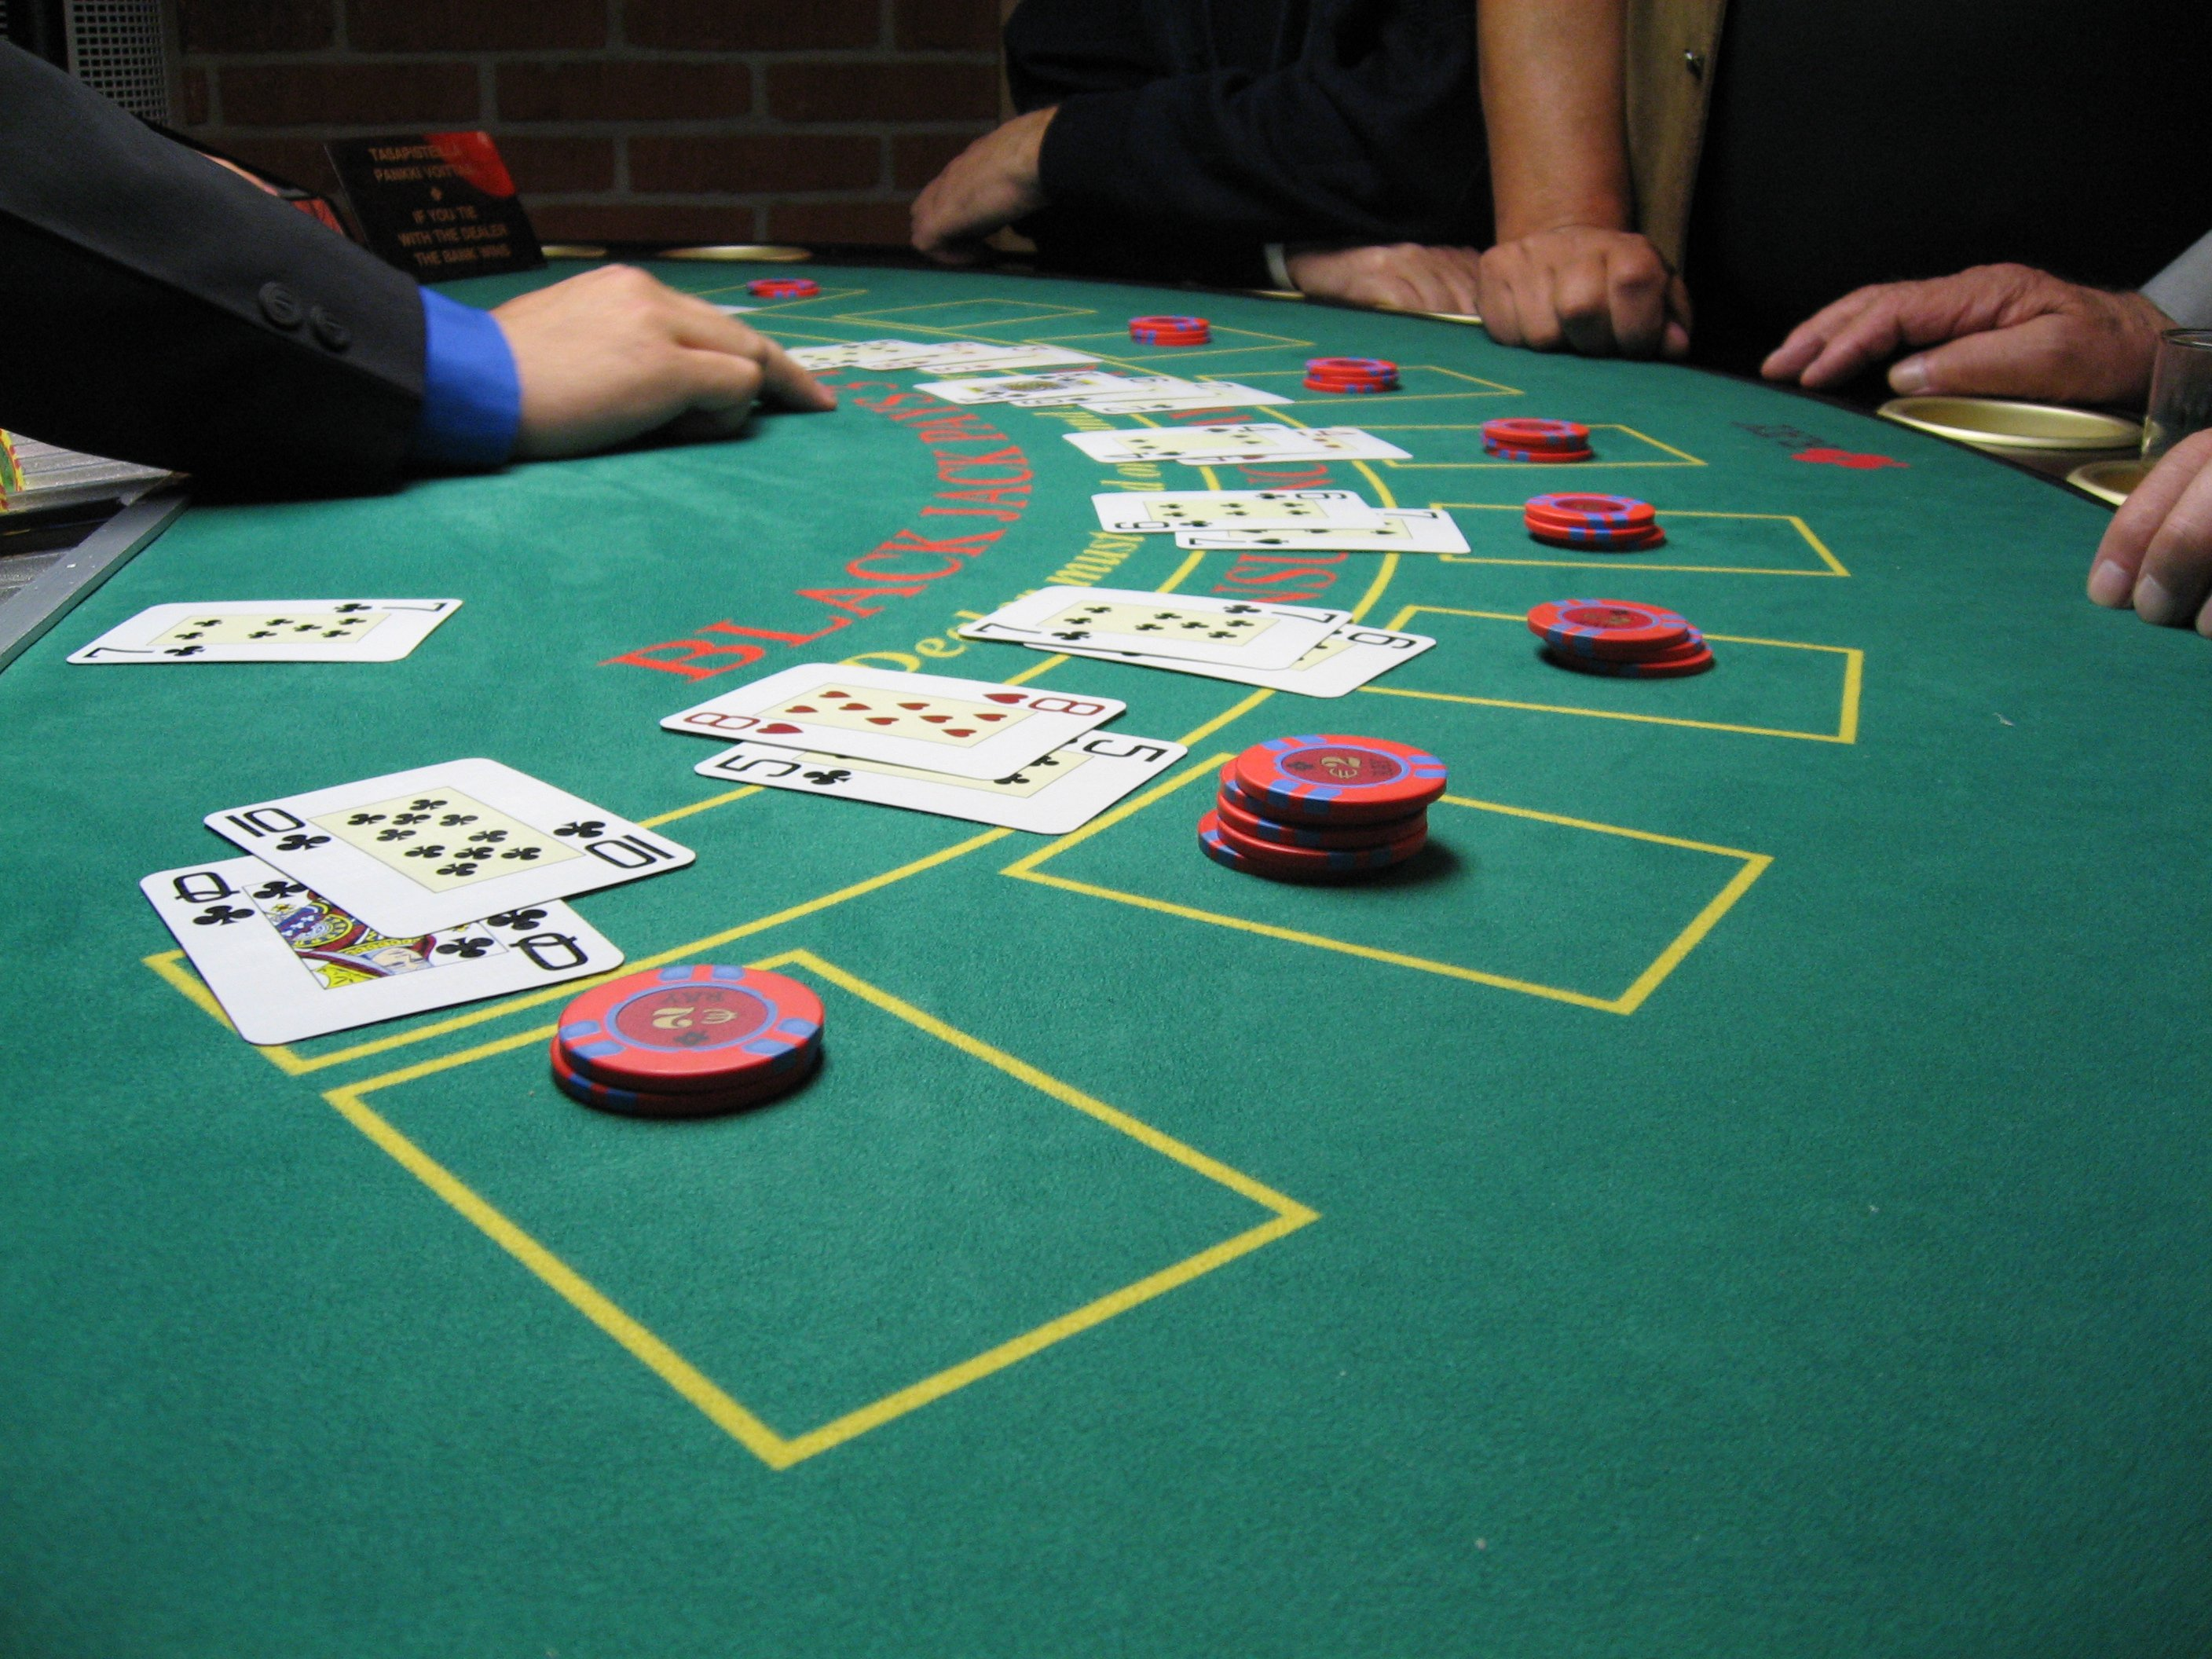 Vegas blackjack 6 to 5